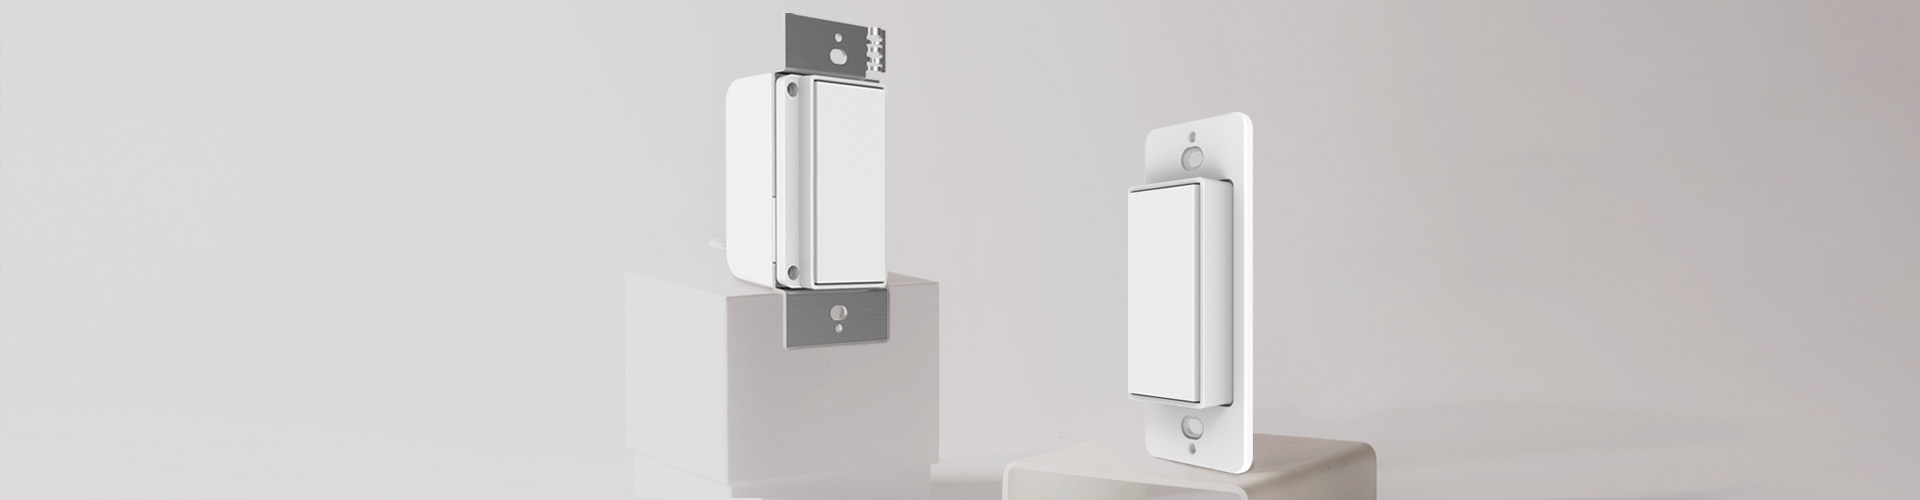 C112 US standard smart switch and controller